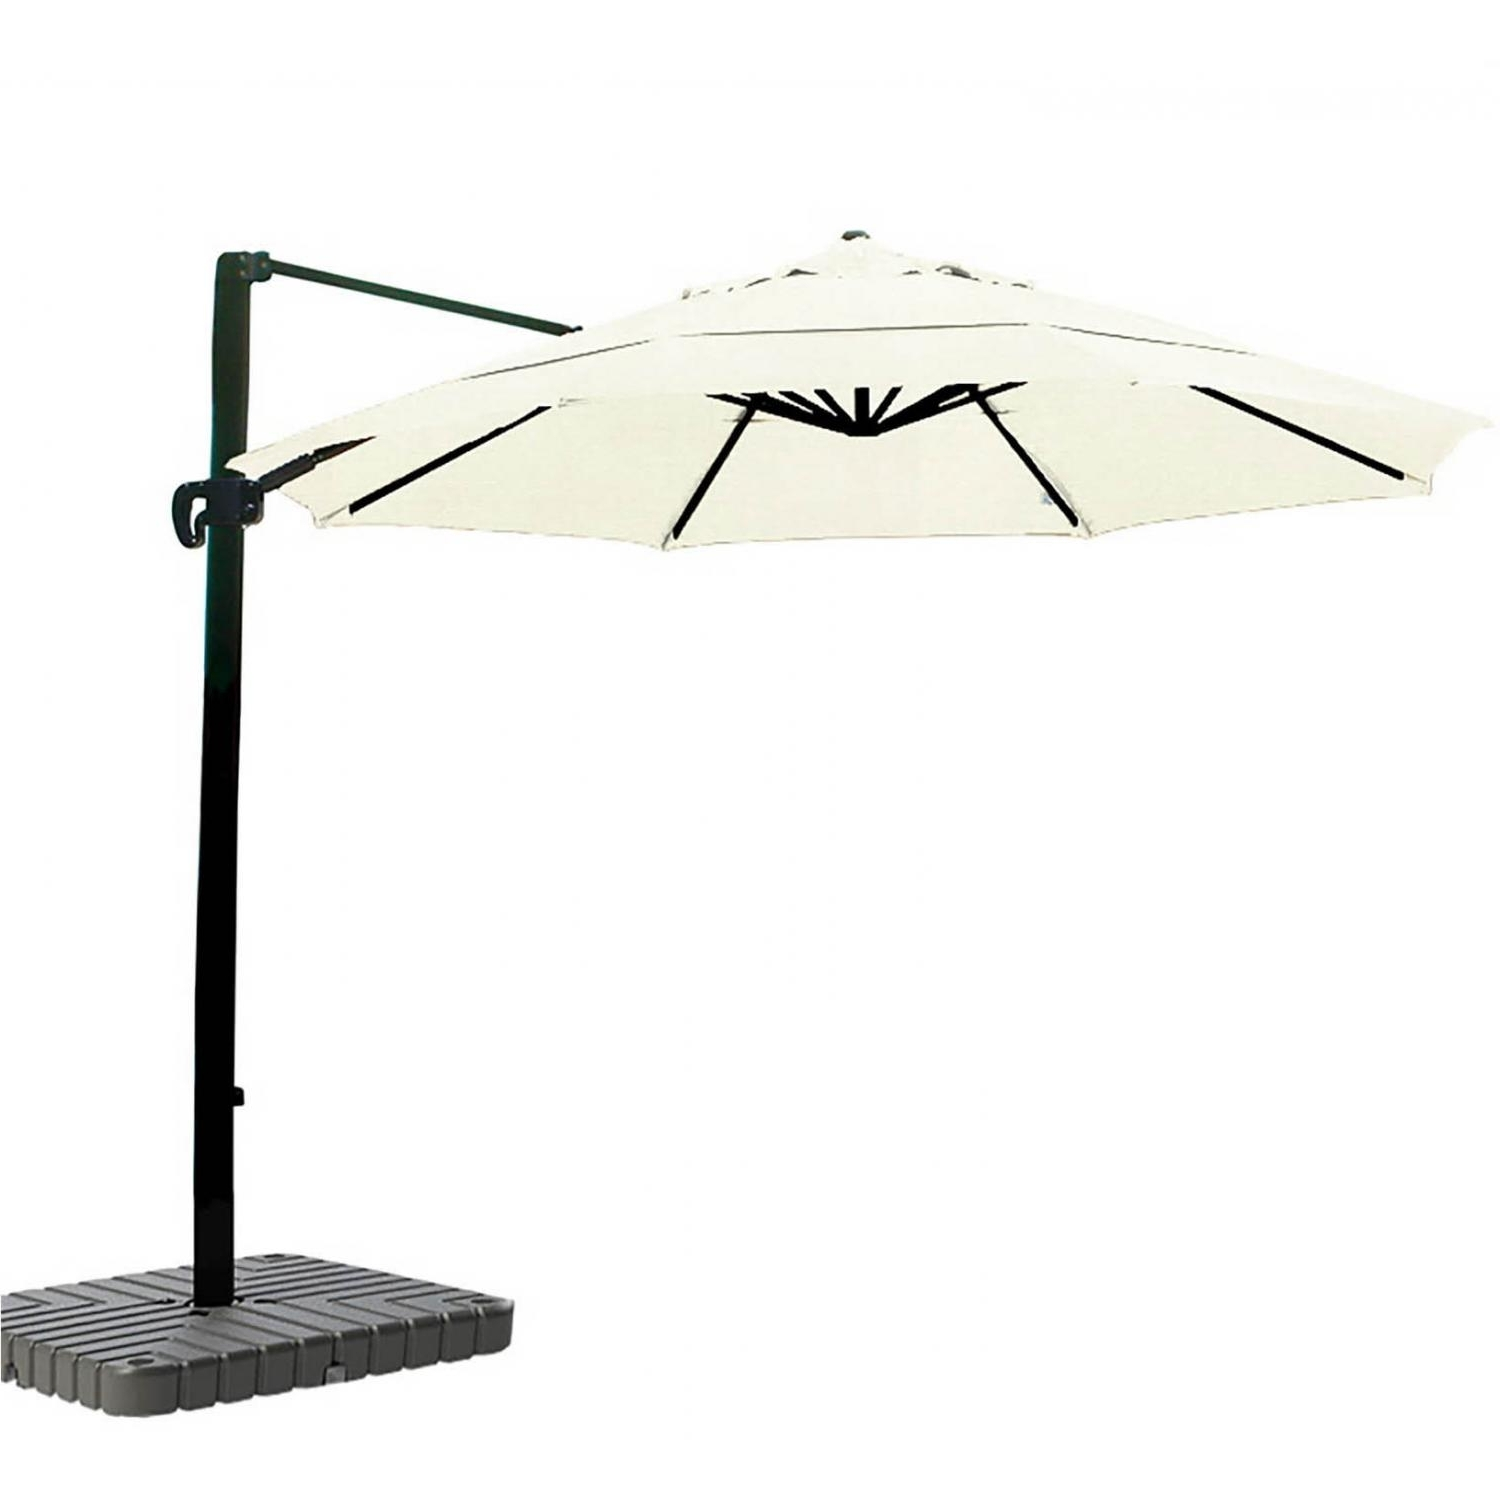 Popular California Umbrella 11 Ft Octagonal Aluminum Multi Position Tilt For 11 Ft Patio Umbrellas (View 16 of 20)